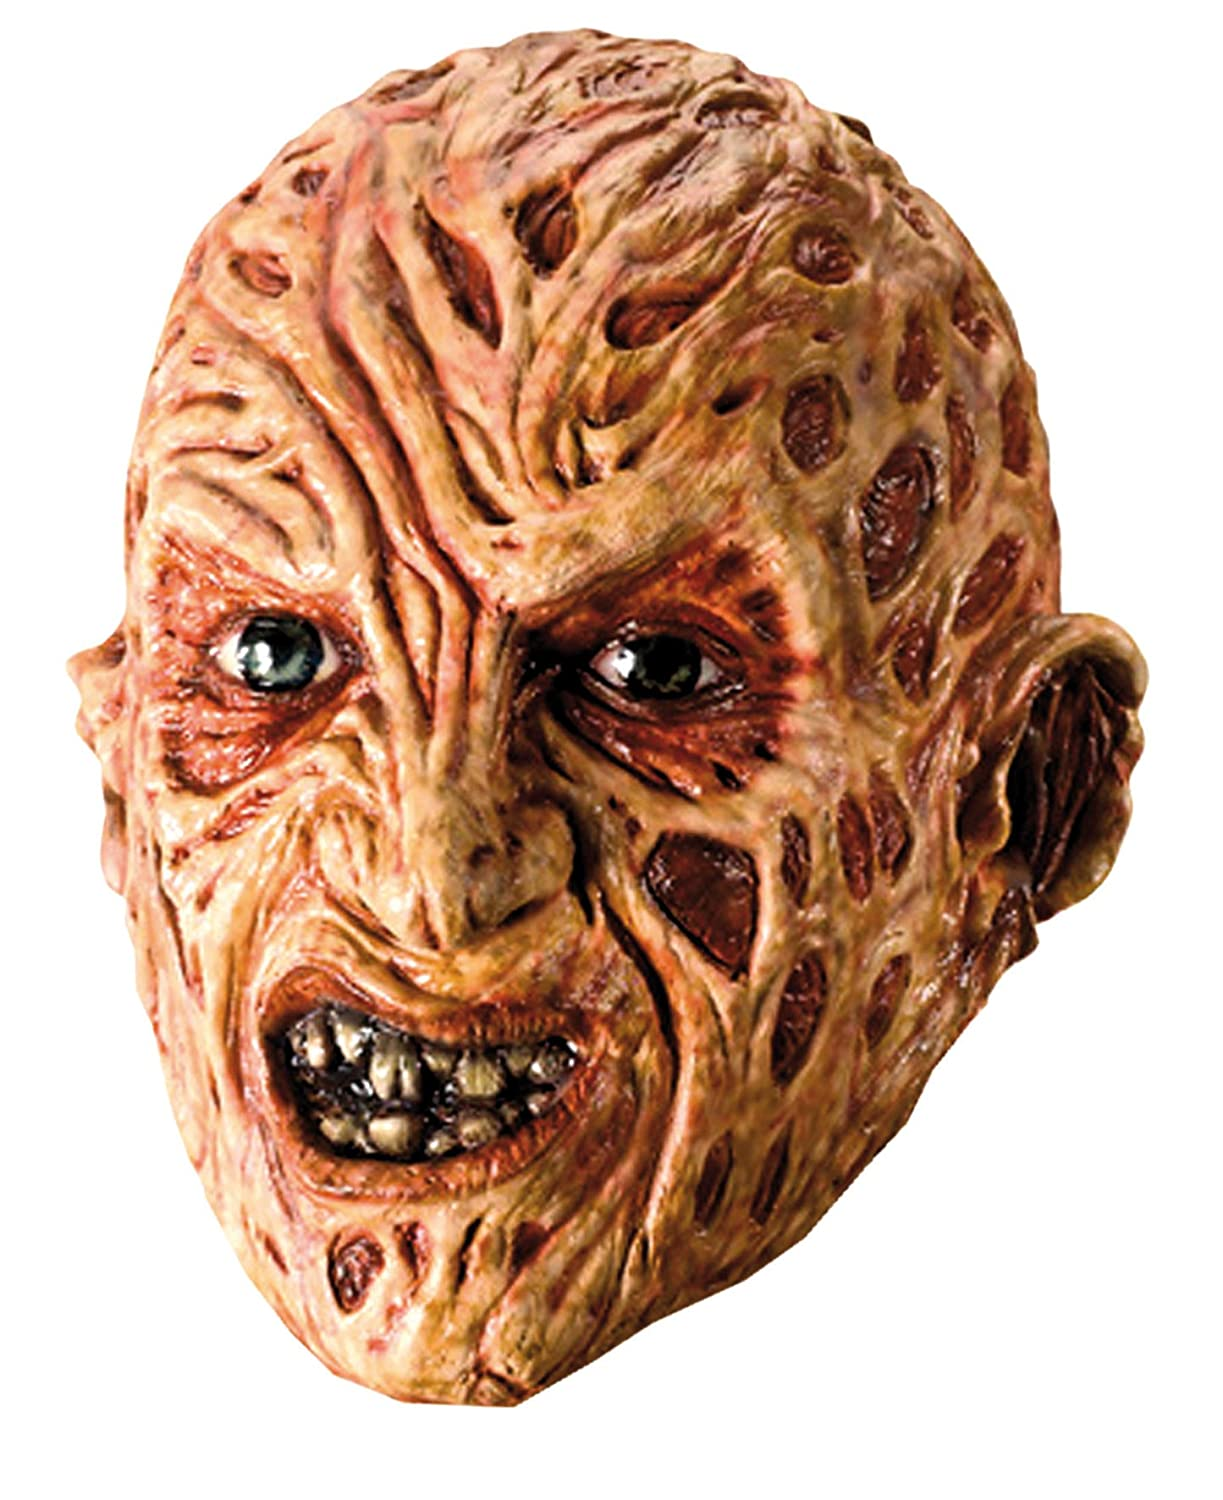 Amazon.com: A Nightmare On Elm Street Freddy Krueger Mask, Red ...